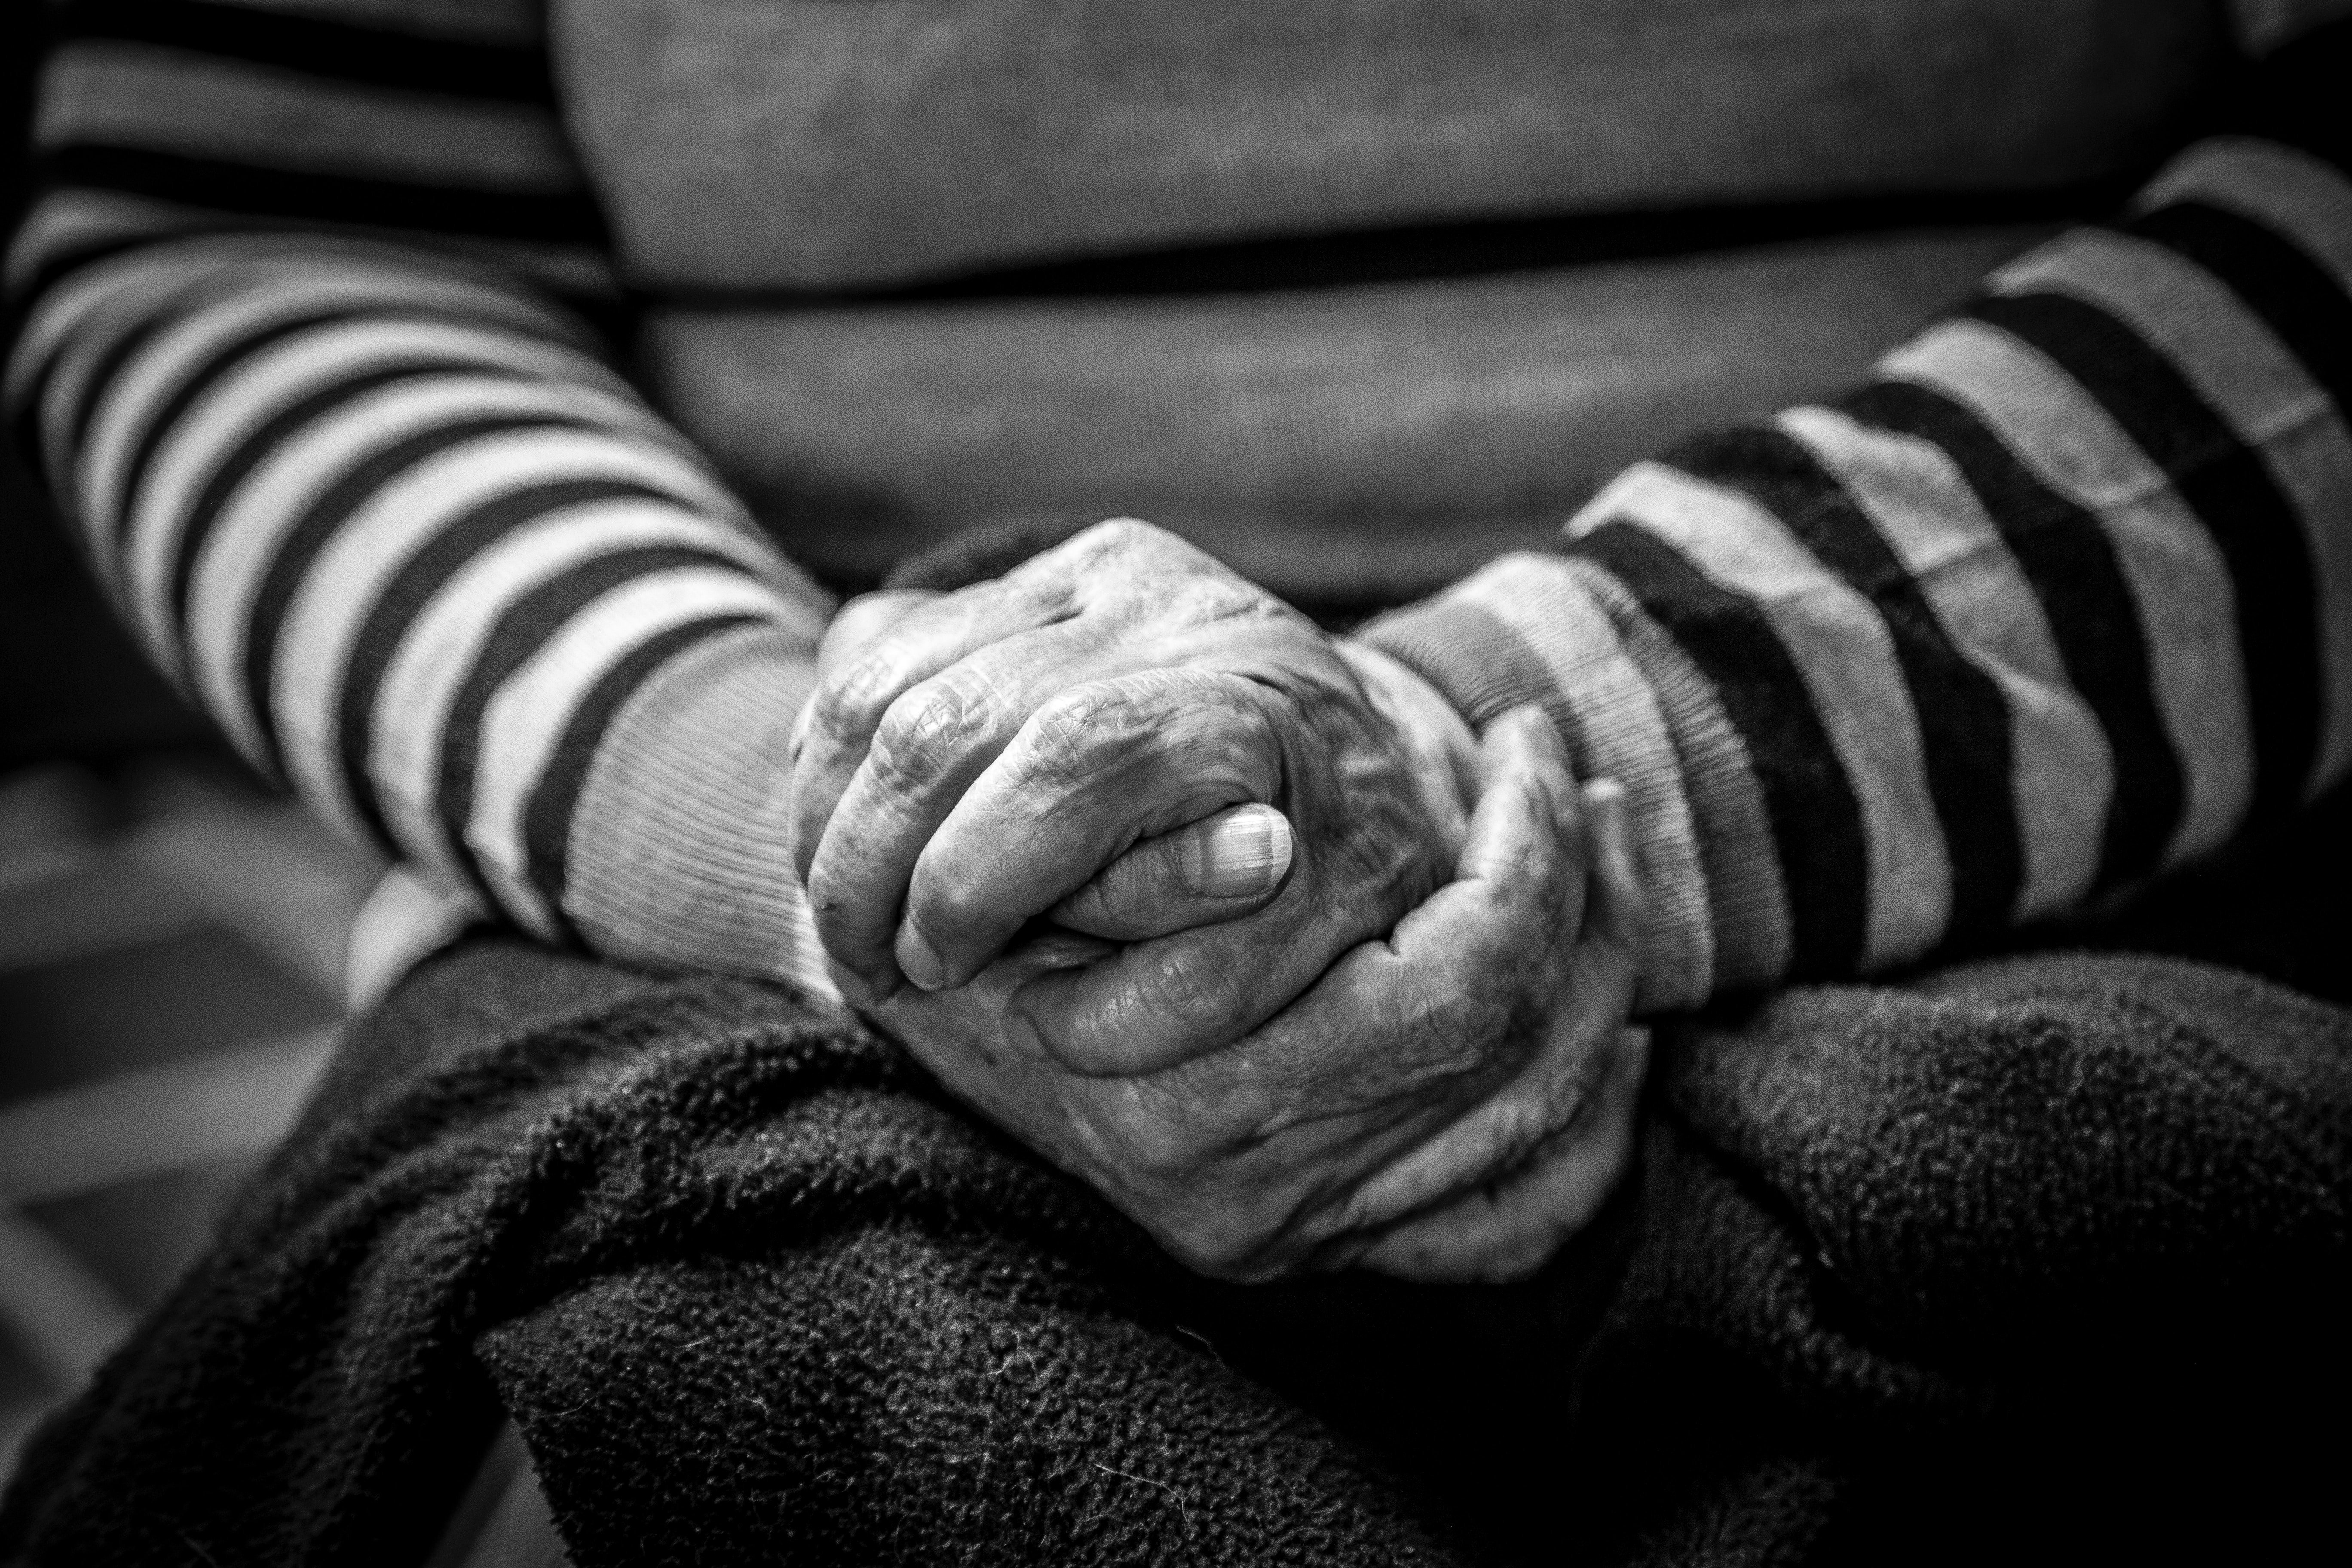 An old lady clasping her hands | Photo by Jorge Lopez on Unsplash